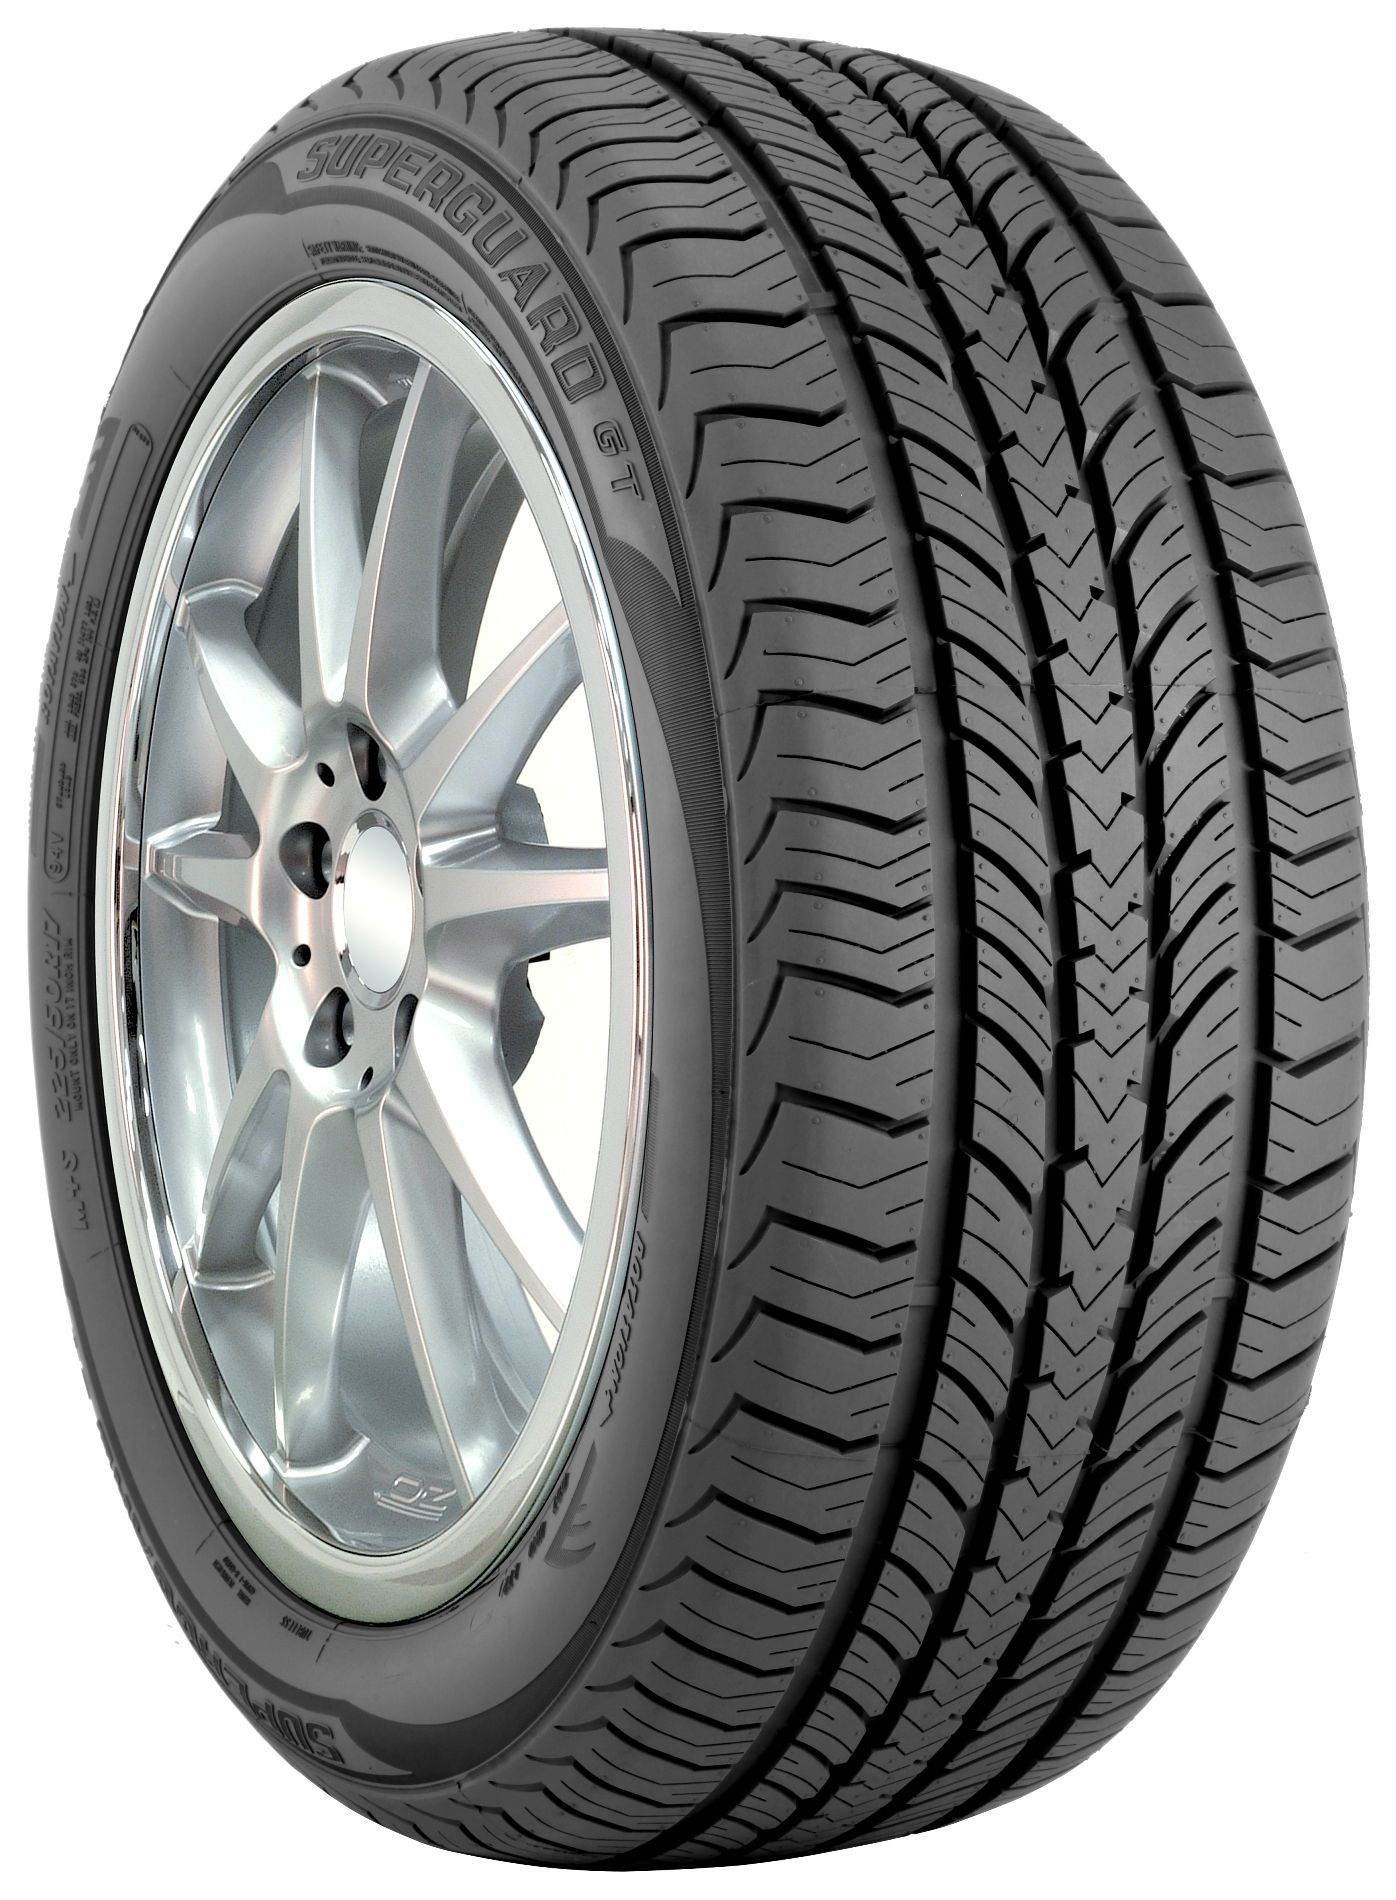 Superguard GT - 215/60R15 94H BW - All Season Tire